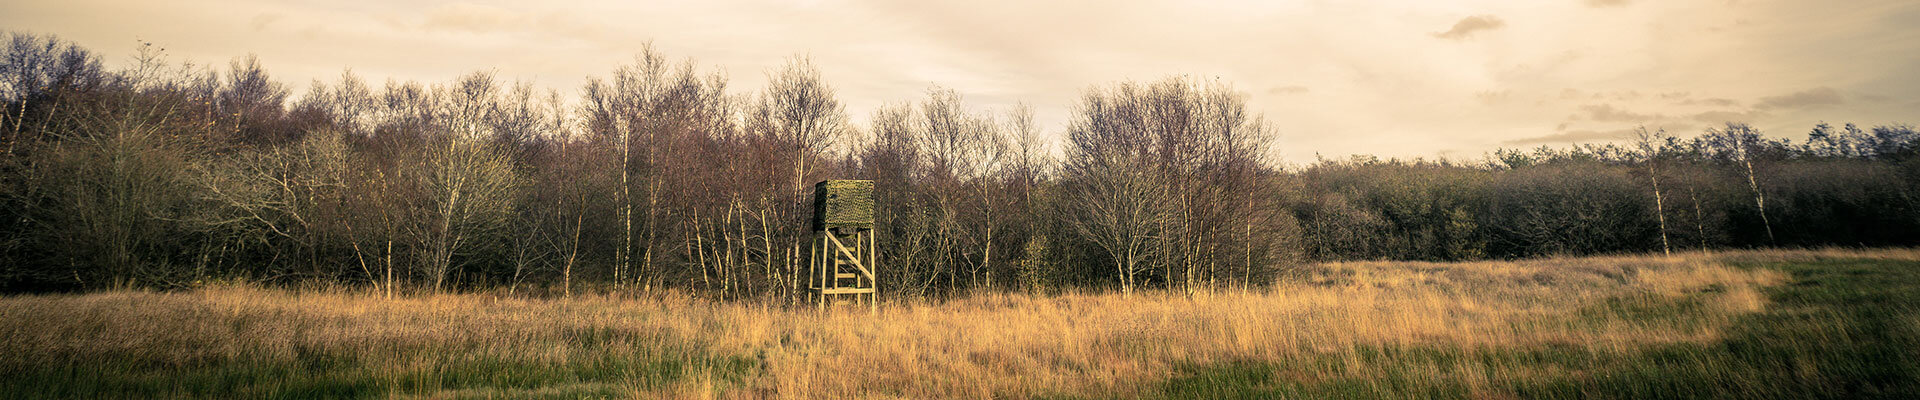 Hunting land in the fall with a deer stand